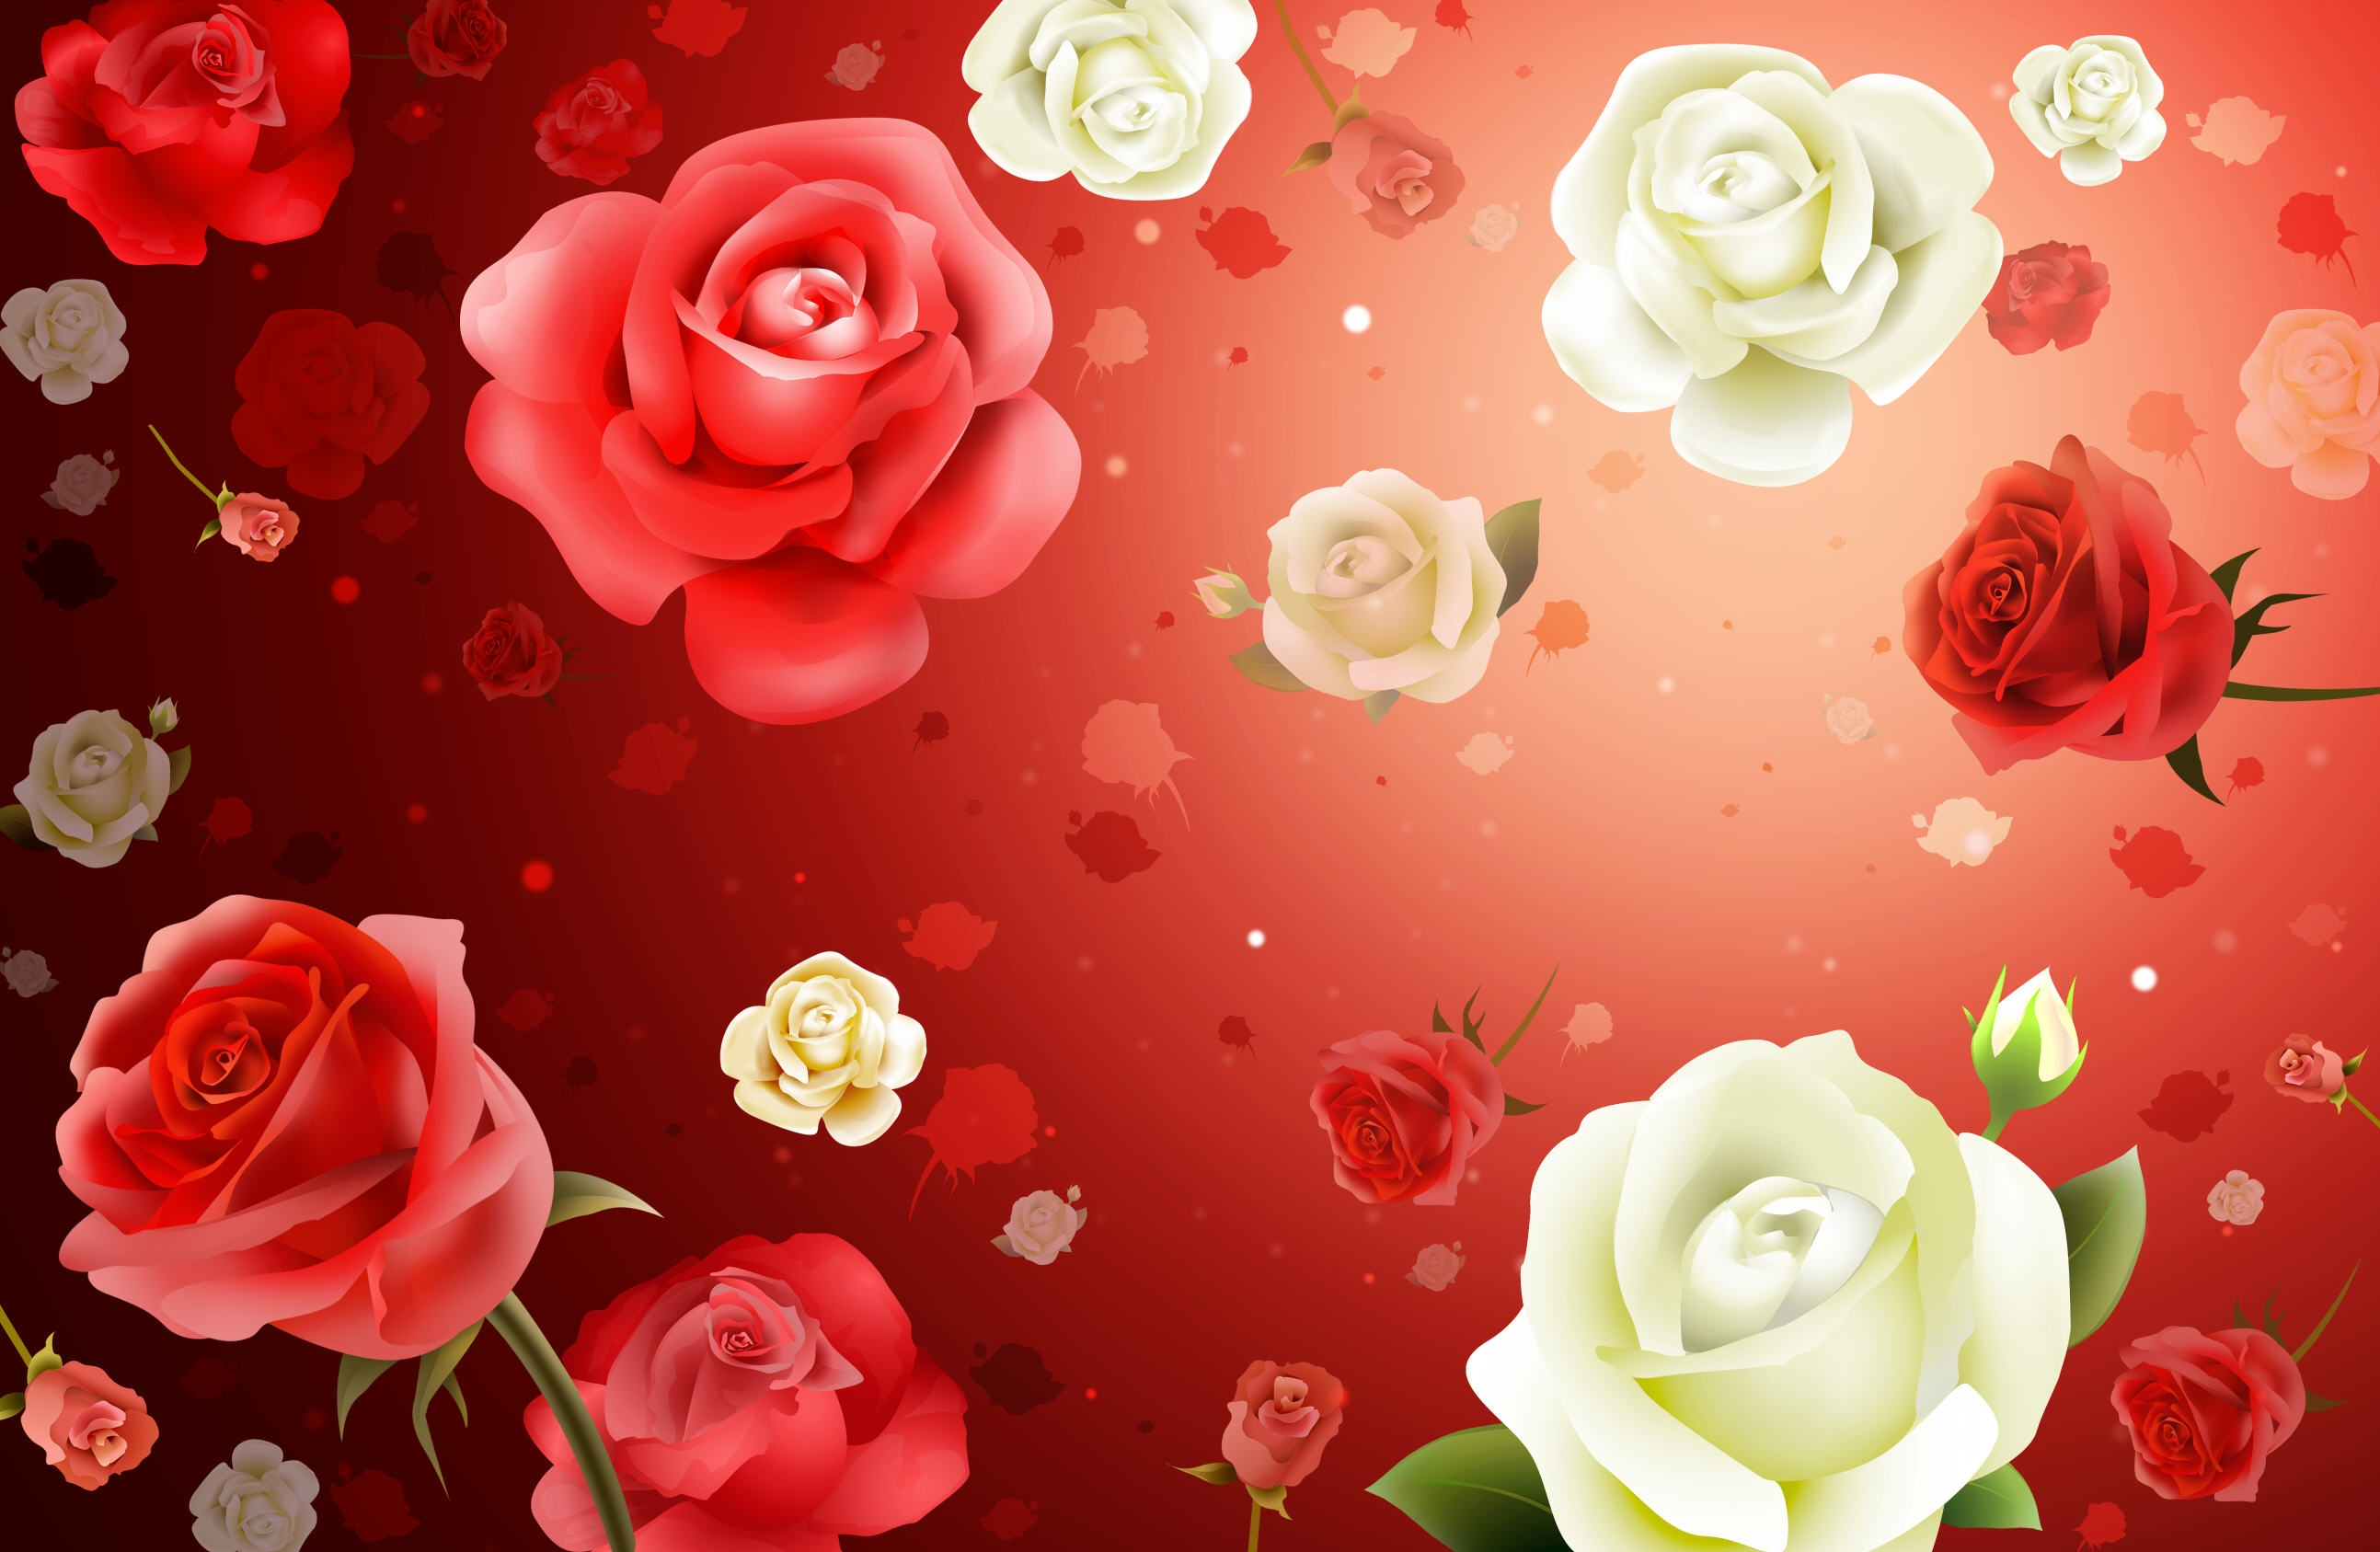 Pink And White Roses Hd Wallpaper Background Image 2587x1687